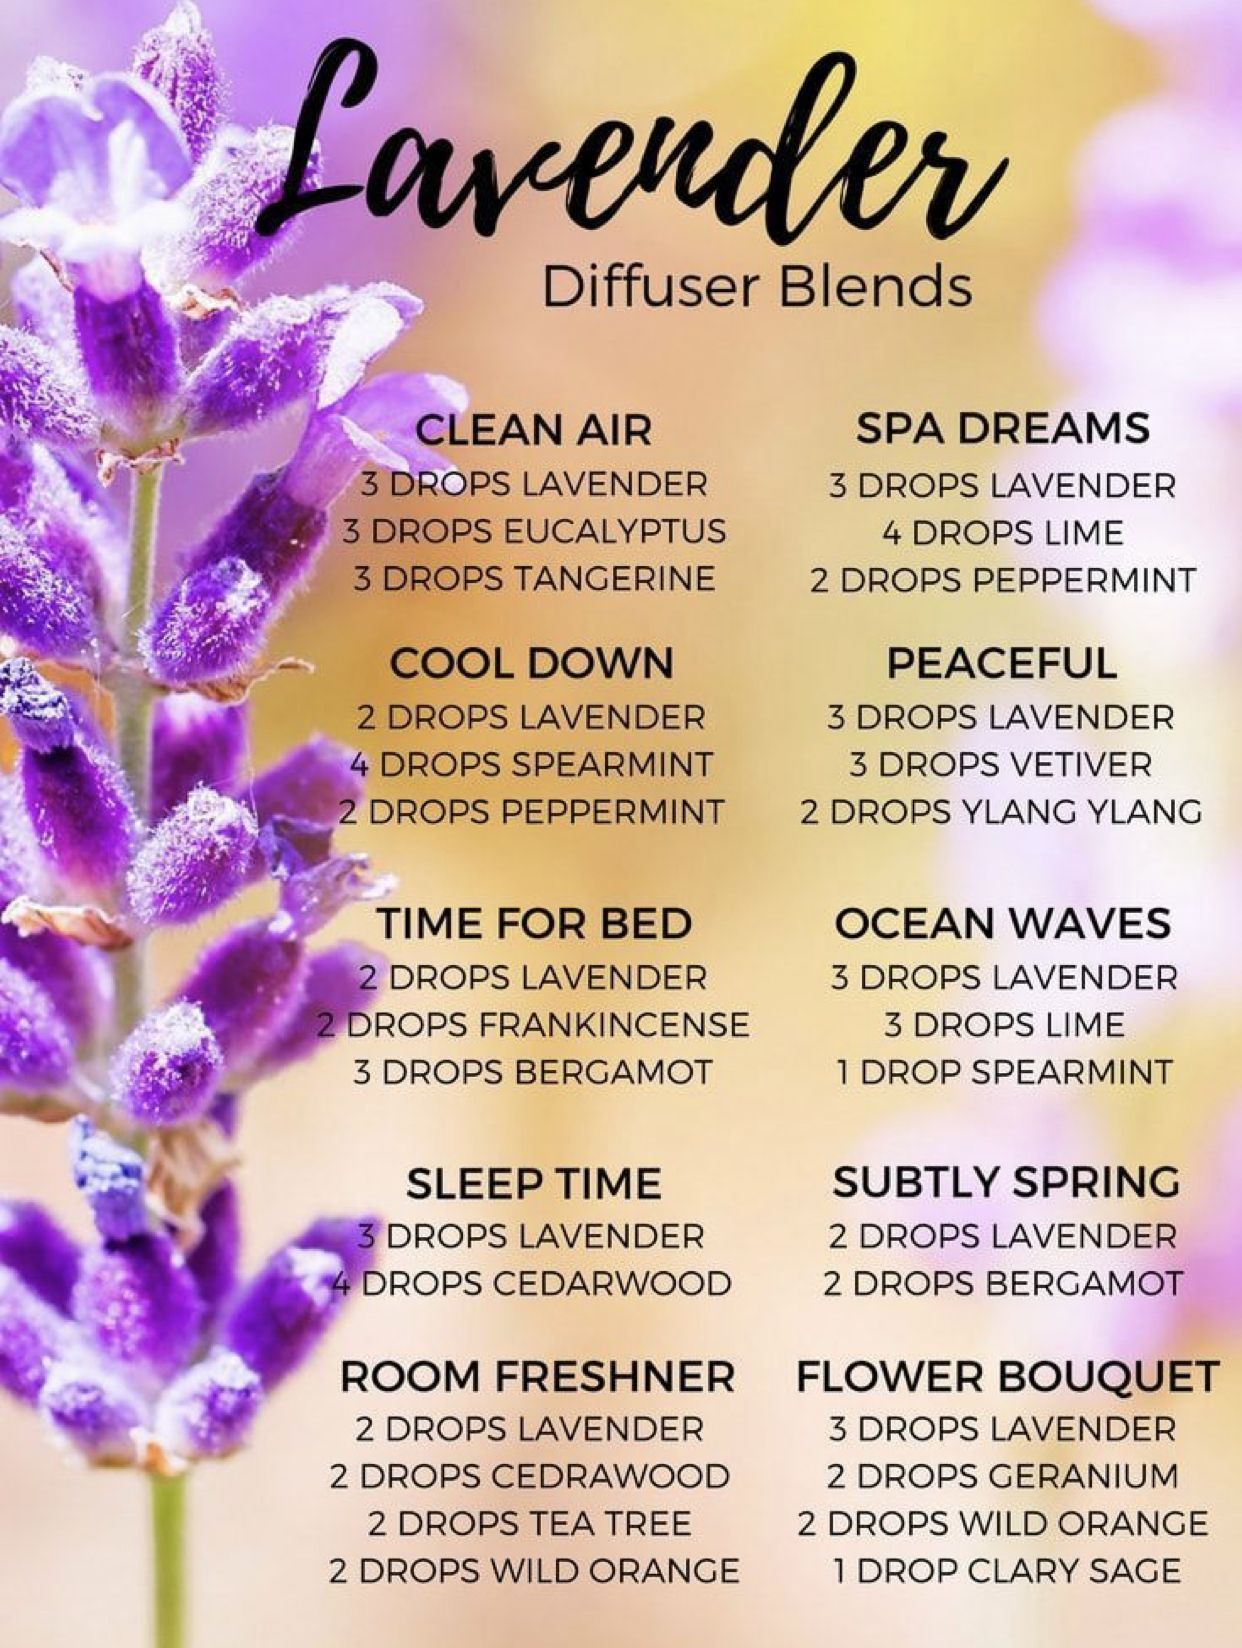 Lavender Oil Diffuser Blends Blends Diffuser Lavender Mondhygieneproductenessenti In 2020 Essential Oils Guide Essential Oil Mixes Essential Oil Blends Recipes #spa #essentials #true #living #room #spray